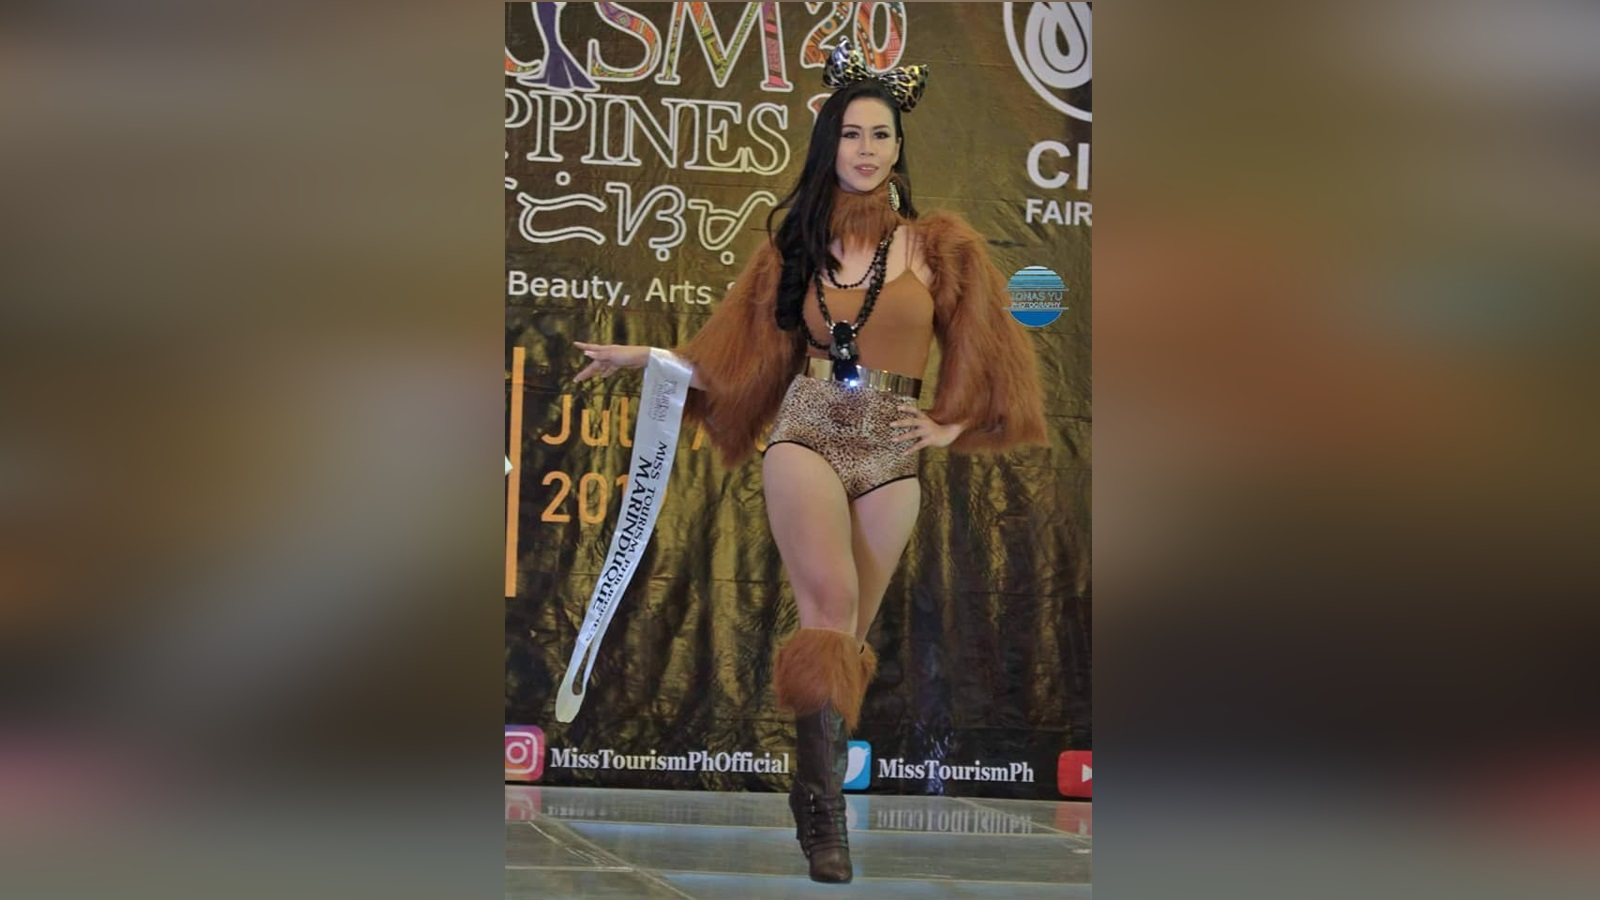 Ms. Tourism PH Marinduque 2019 Princess Nicca Blackburn as she walk on her Zafari Runway at SM Fairview, Quezon City